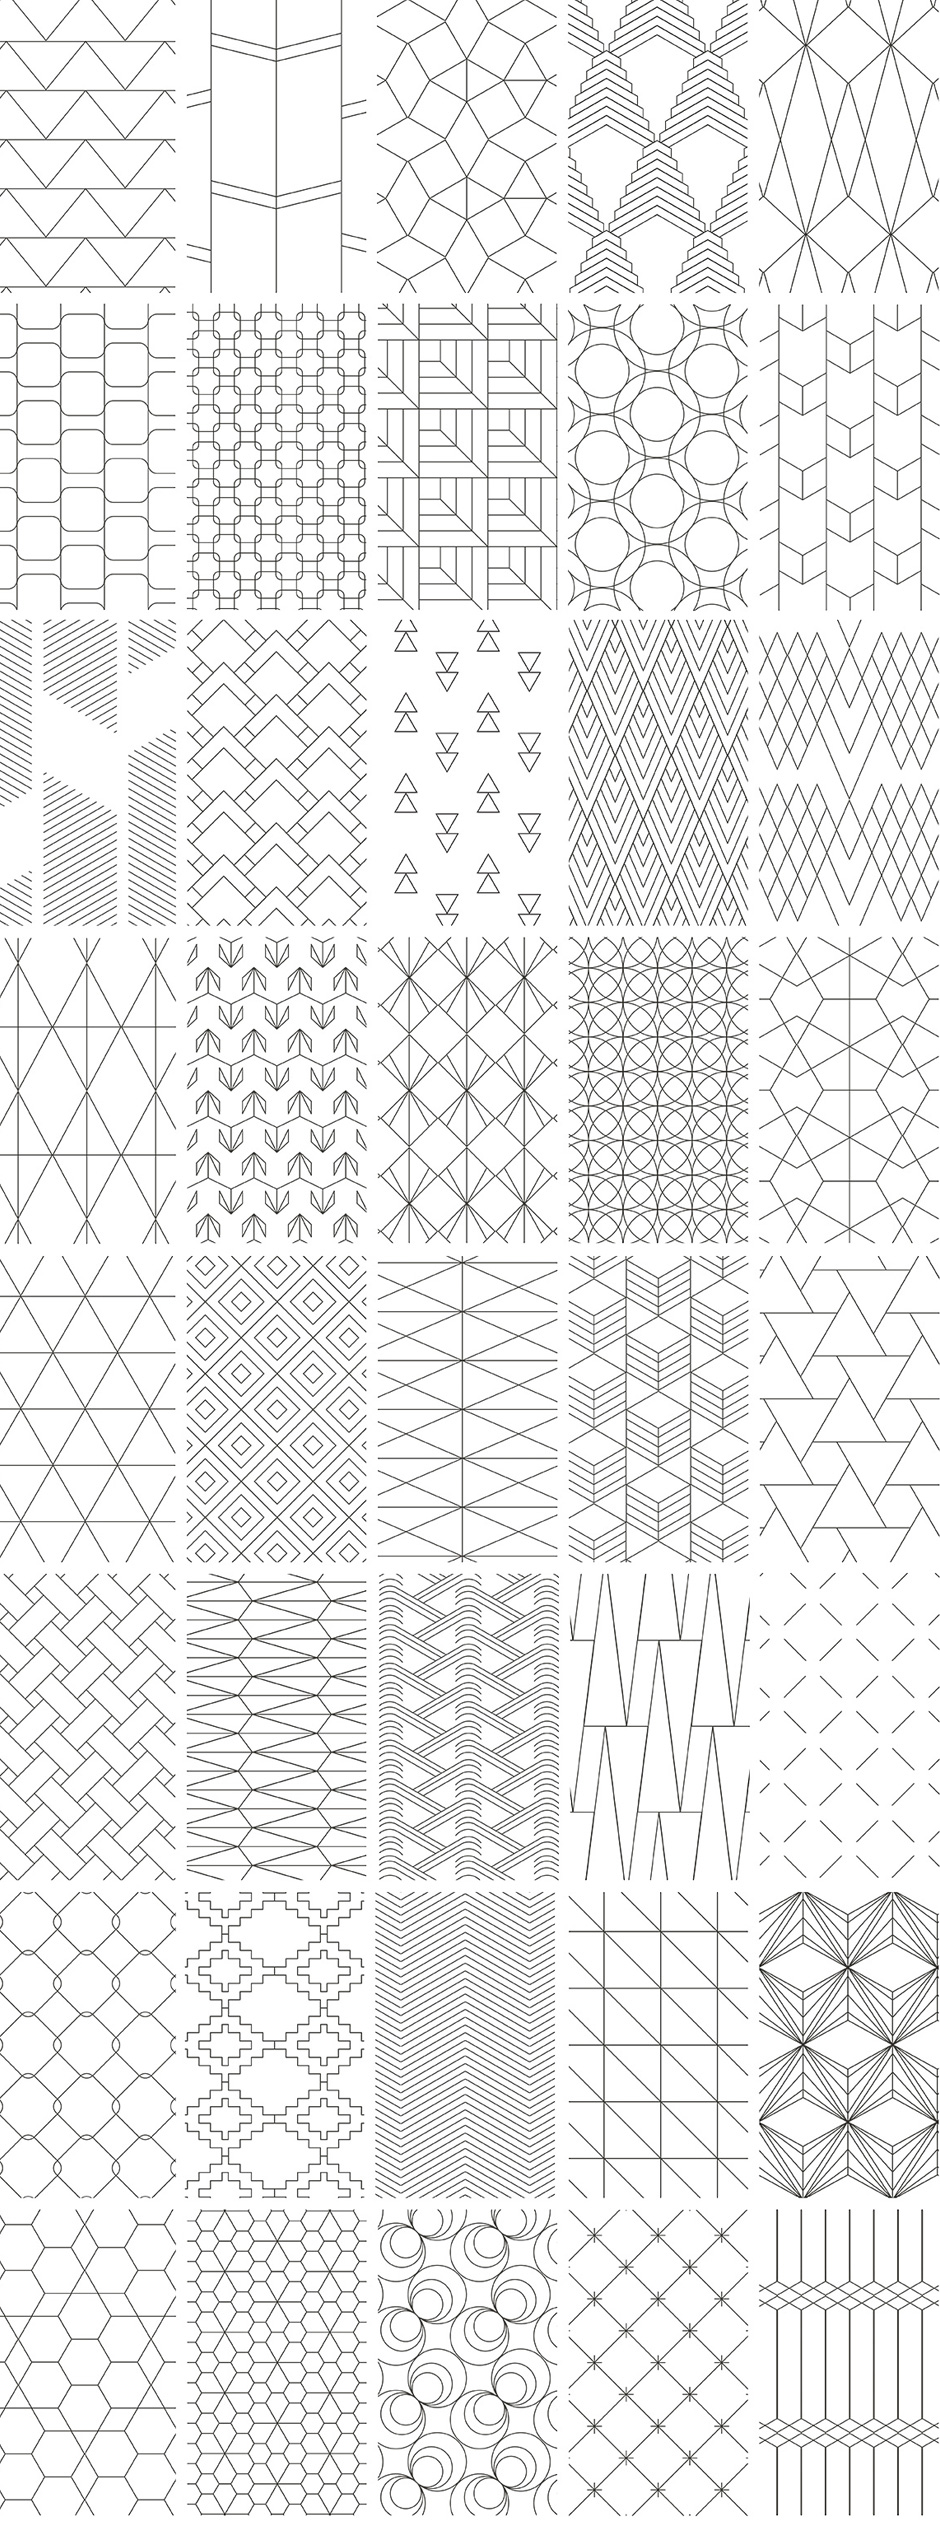 Simple Line Geometric Patterns - Design Cuts Design Cuts